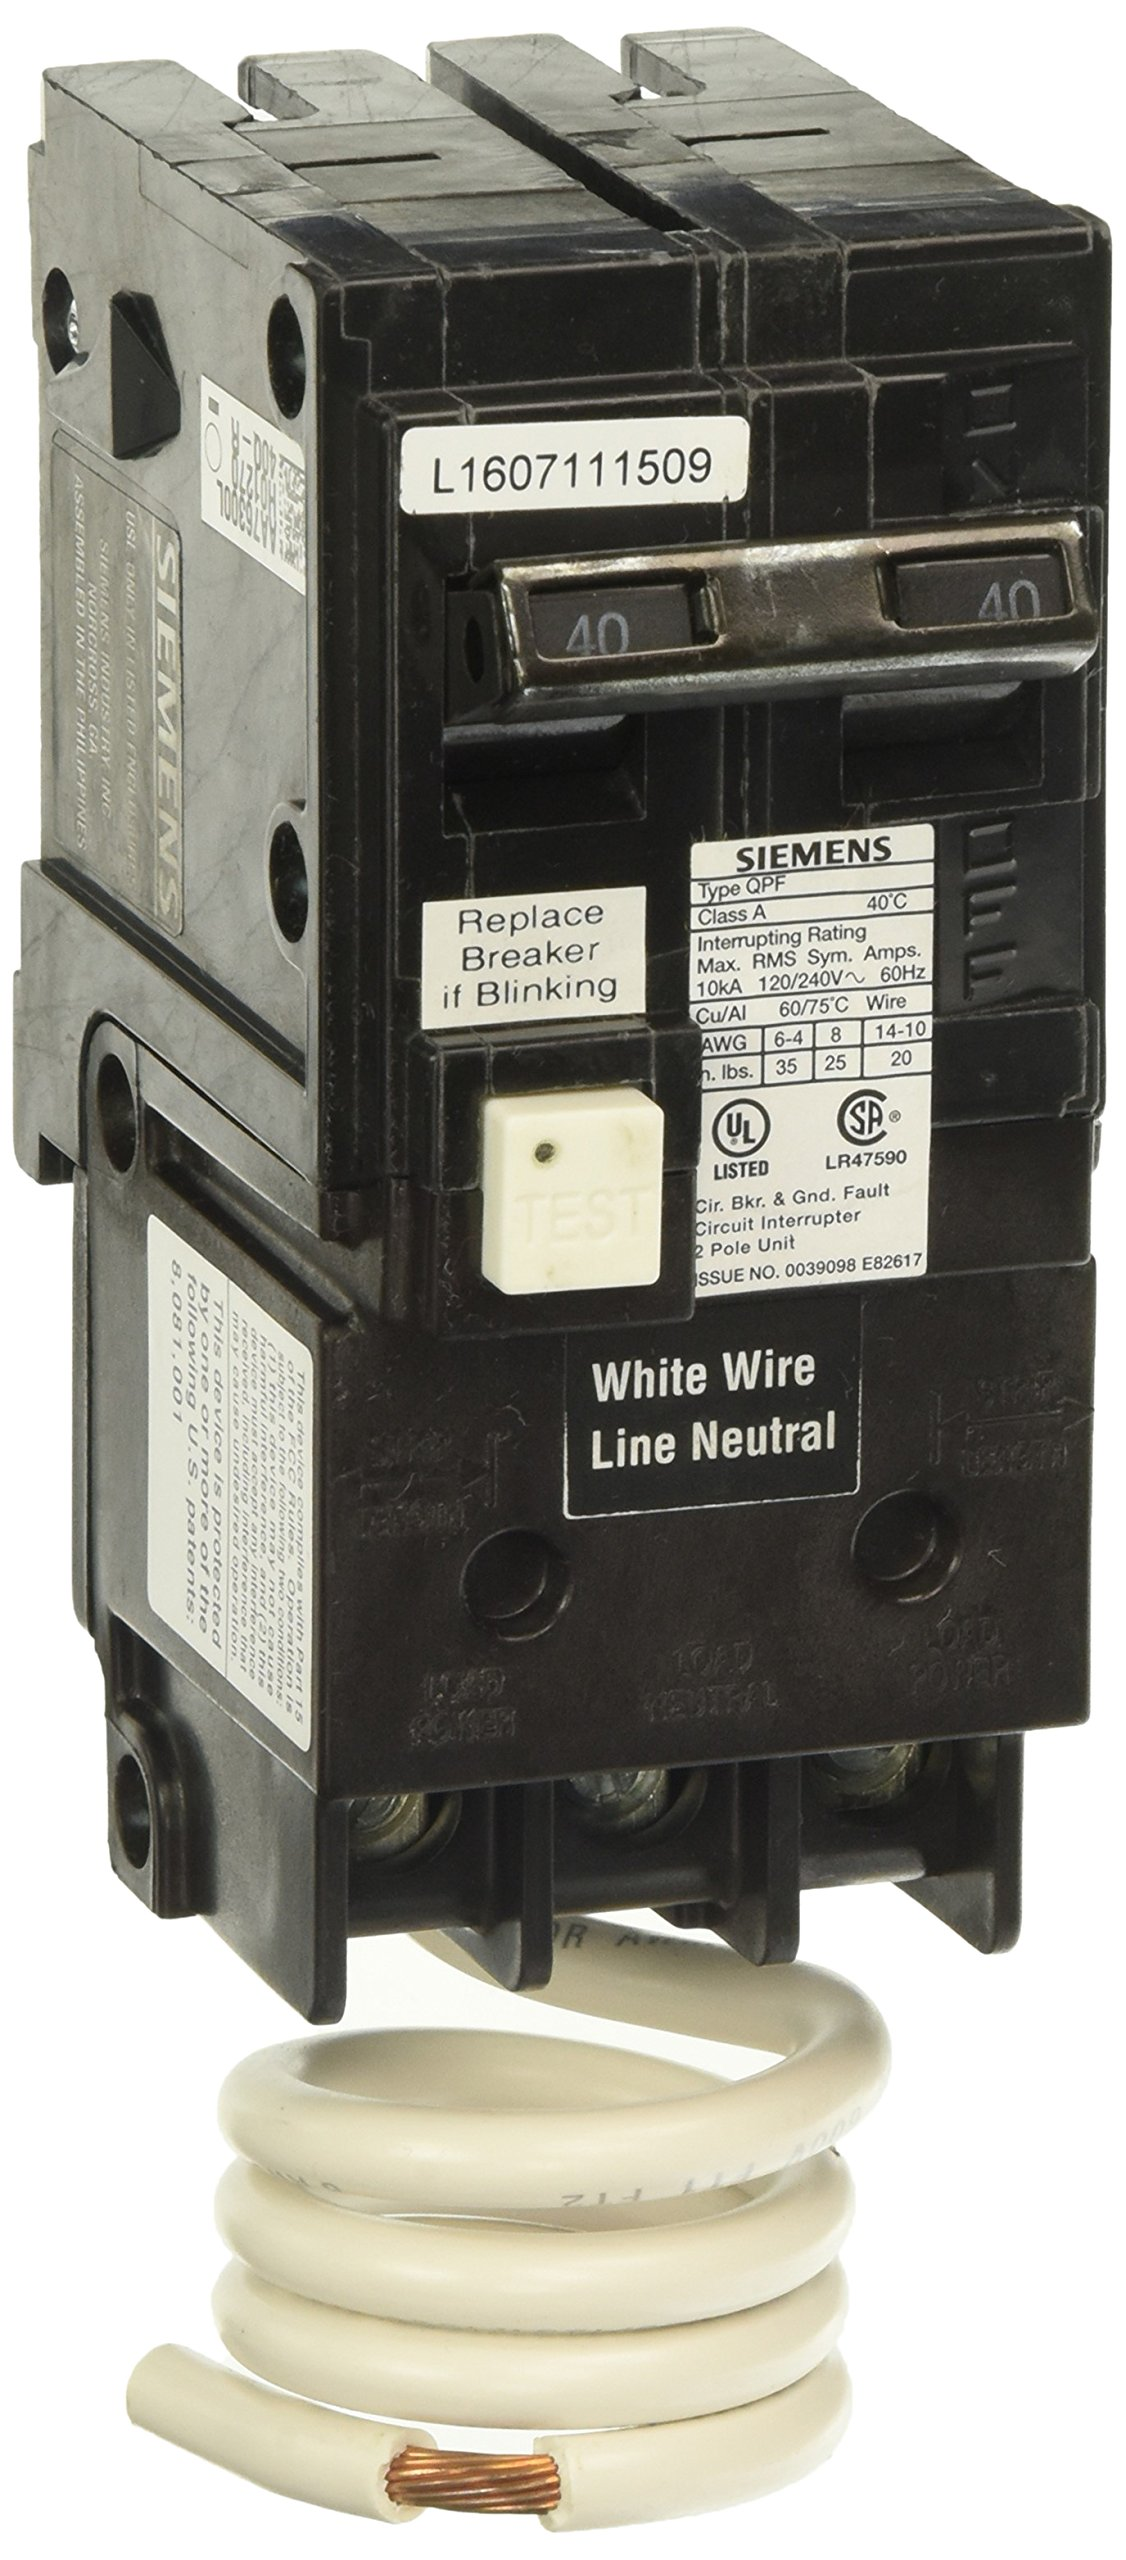 Siemens QF240A Ground Fault Circuit Interrupter, 40 Amp, 2 Pole, 120V, 10,000 Aic,